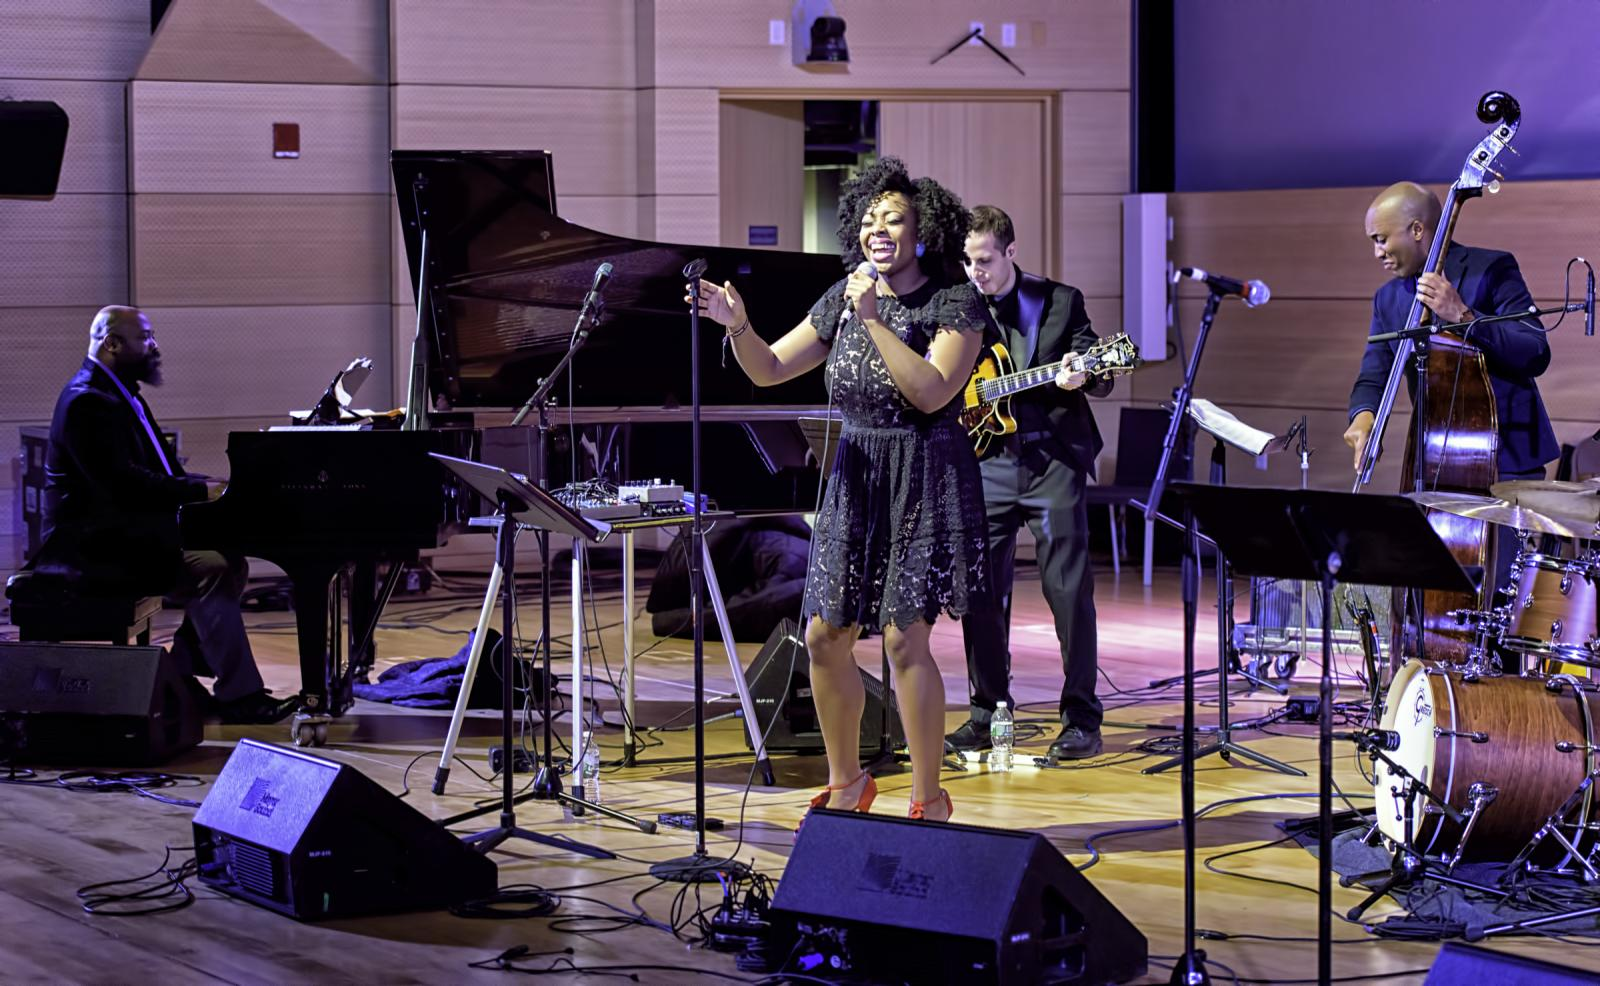 Allyn Johnson, Alicia Olatuja, David Rosenthal and Reuben Rogers with Songs of Freedom  at the NYC Winter Jazzfest 2017